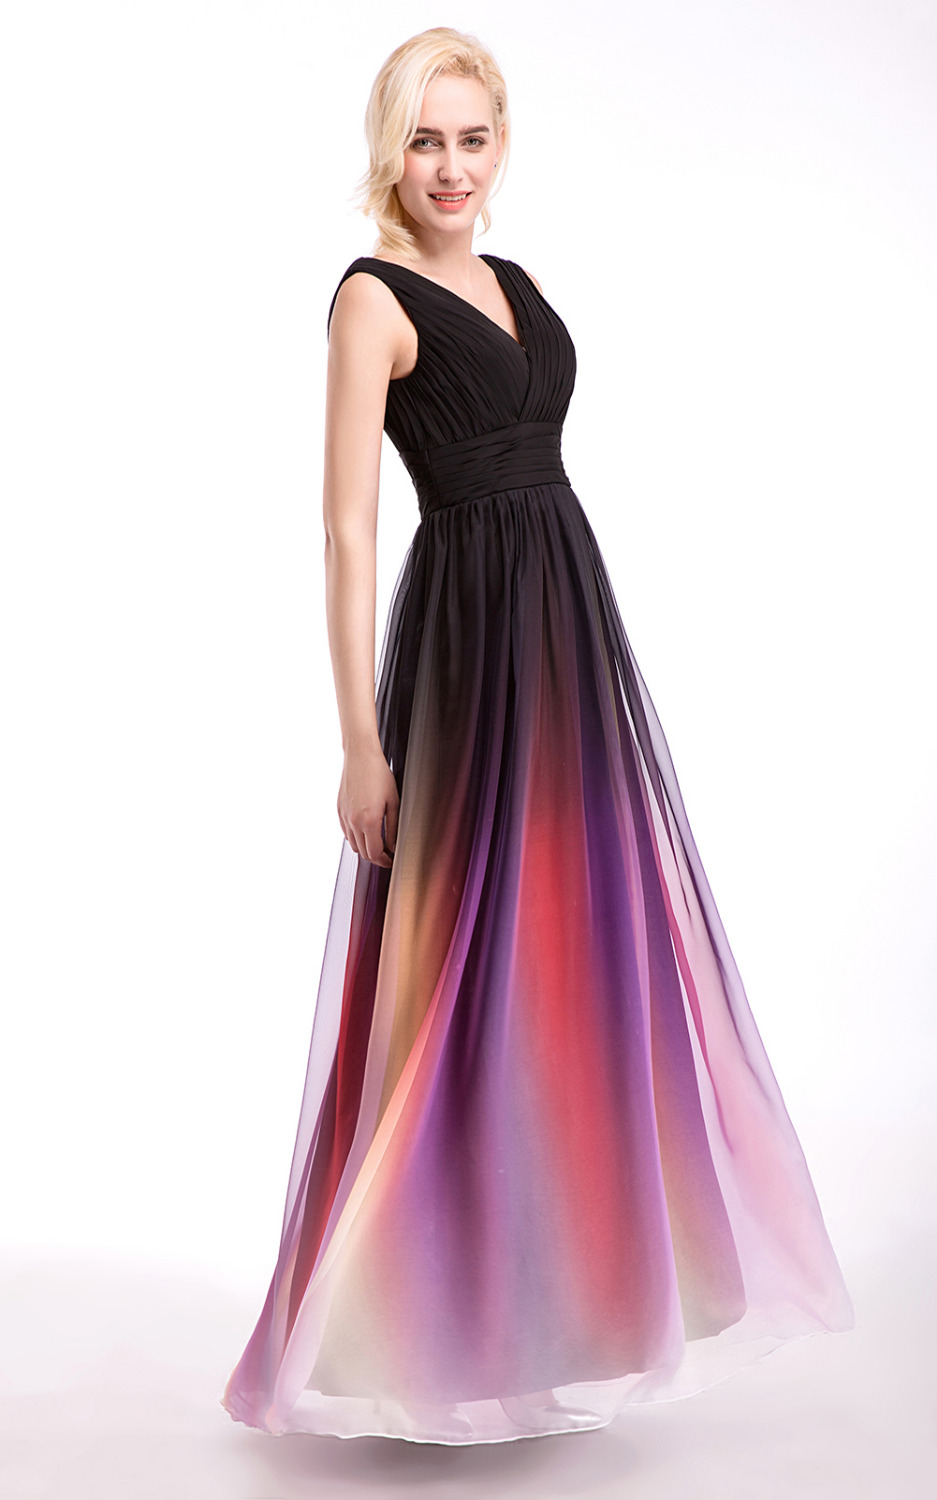 2017 chiffon purple gray blue bridesmaid dress in stock elegant 2017 chiffon purple gray blue bridesmaid dress in stock elegant long bridesmaid gowns in bridesmaid dresses from weddings events on aliexpress ombrellifo Gallery